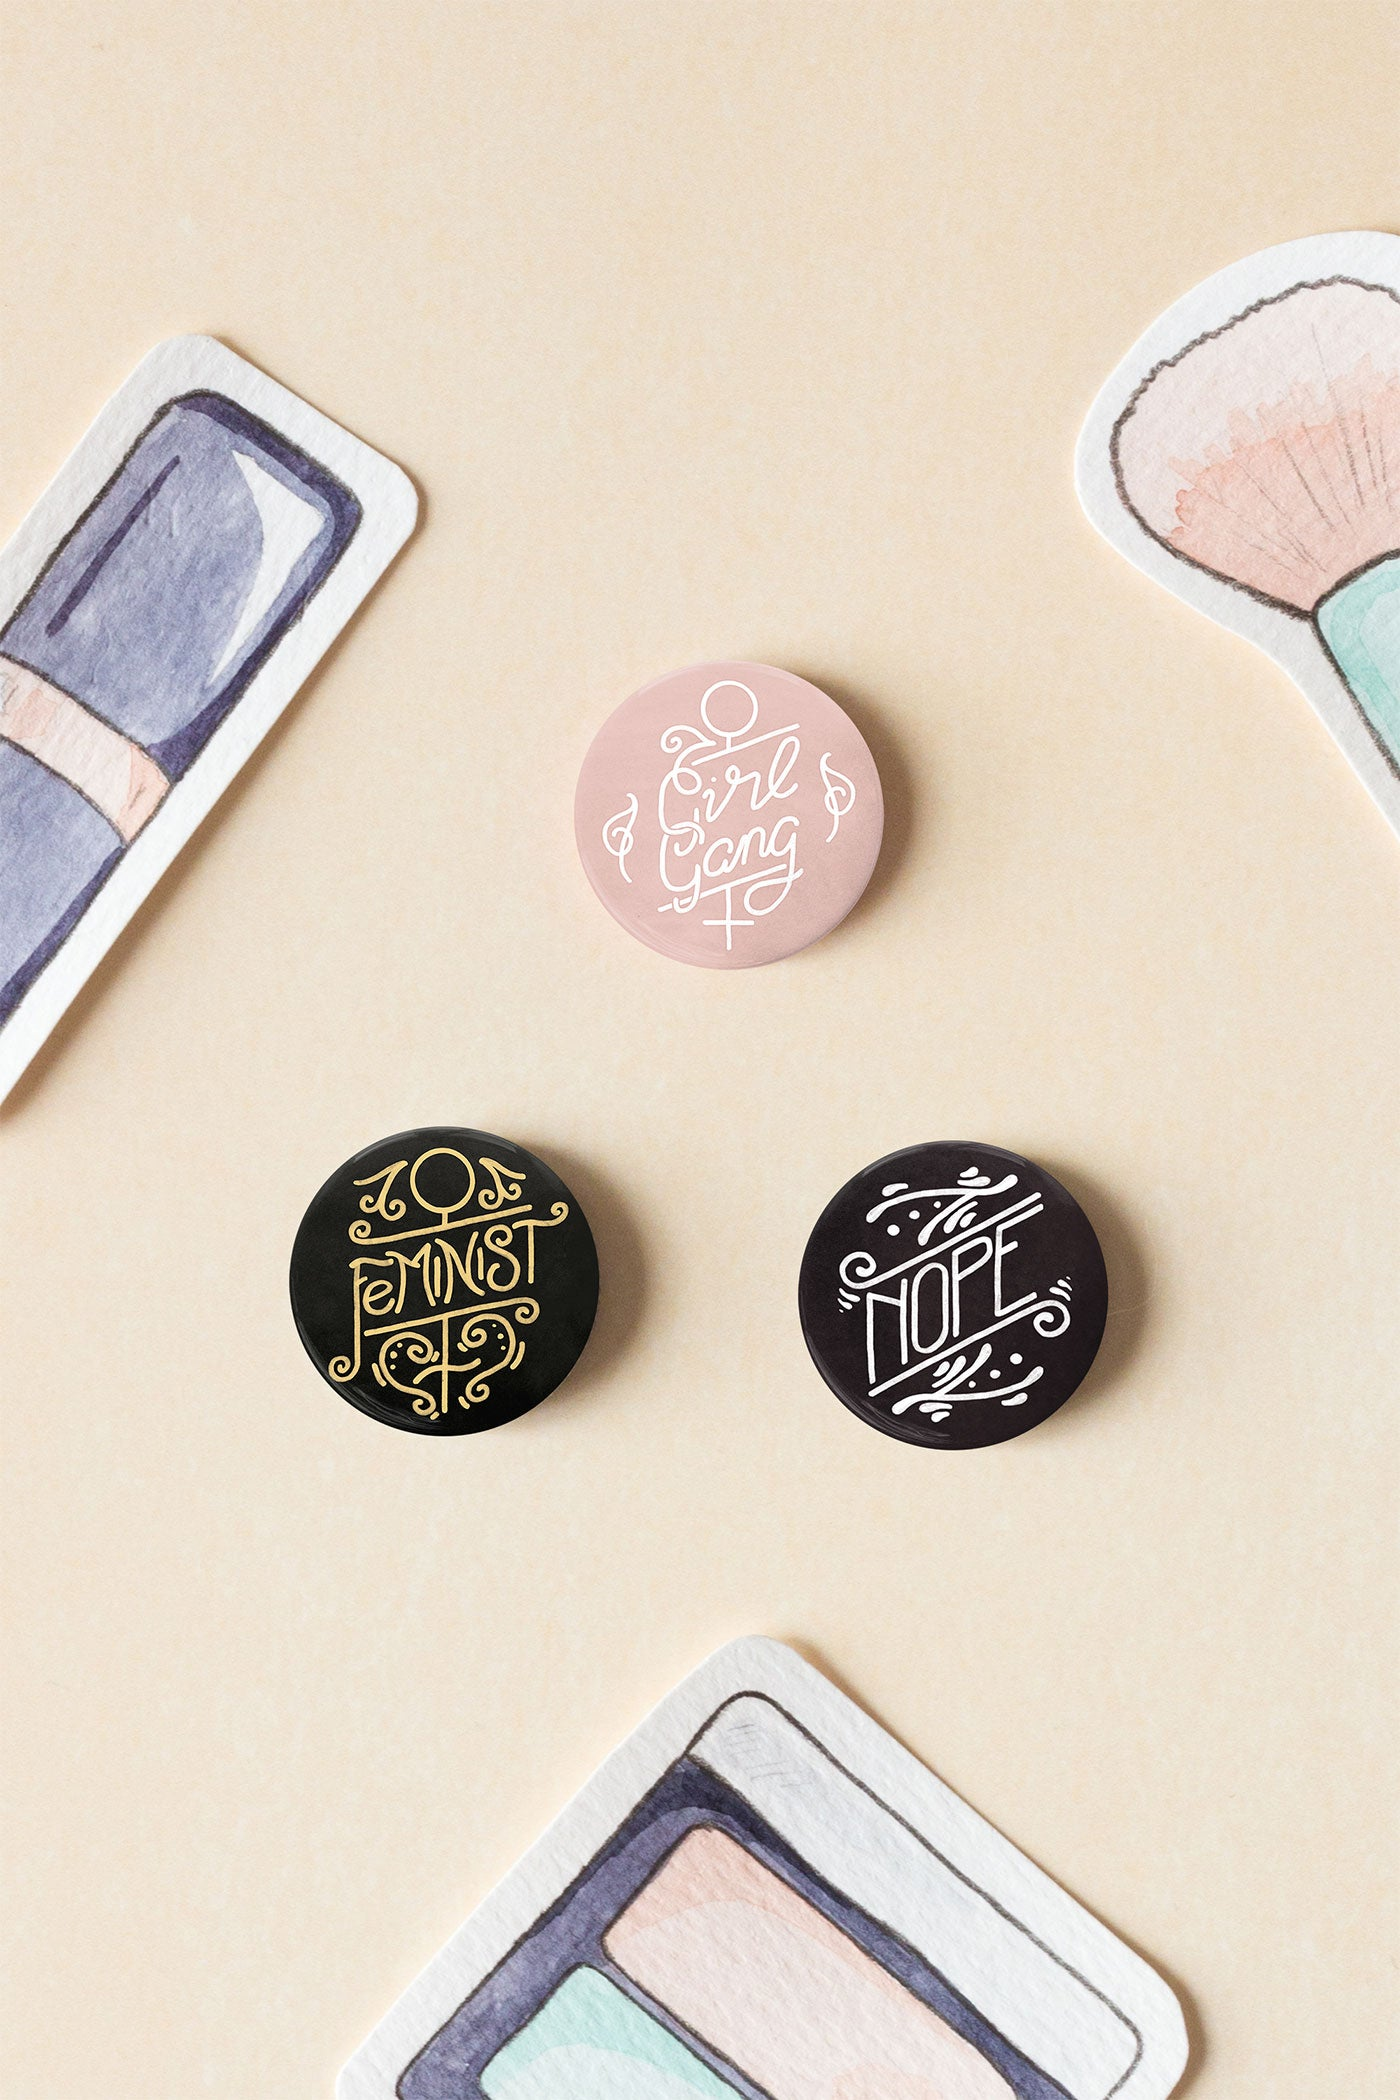 Girl Gang / Feminist Pin-Back Button Badges - A Rose Cast